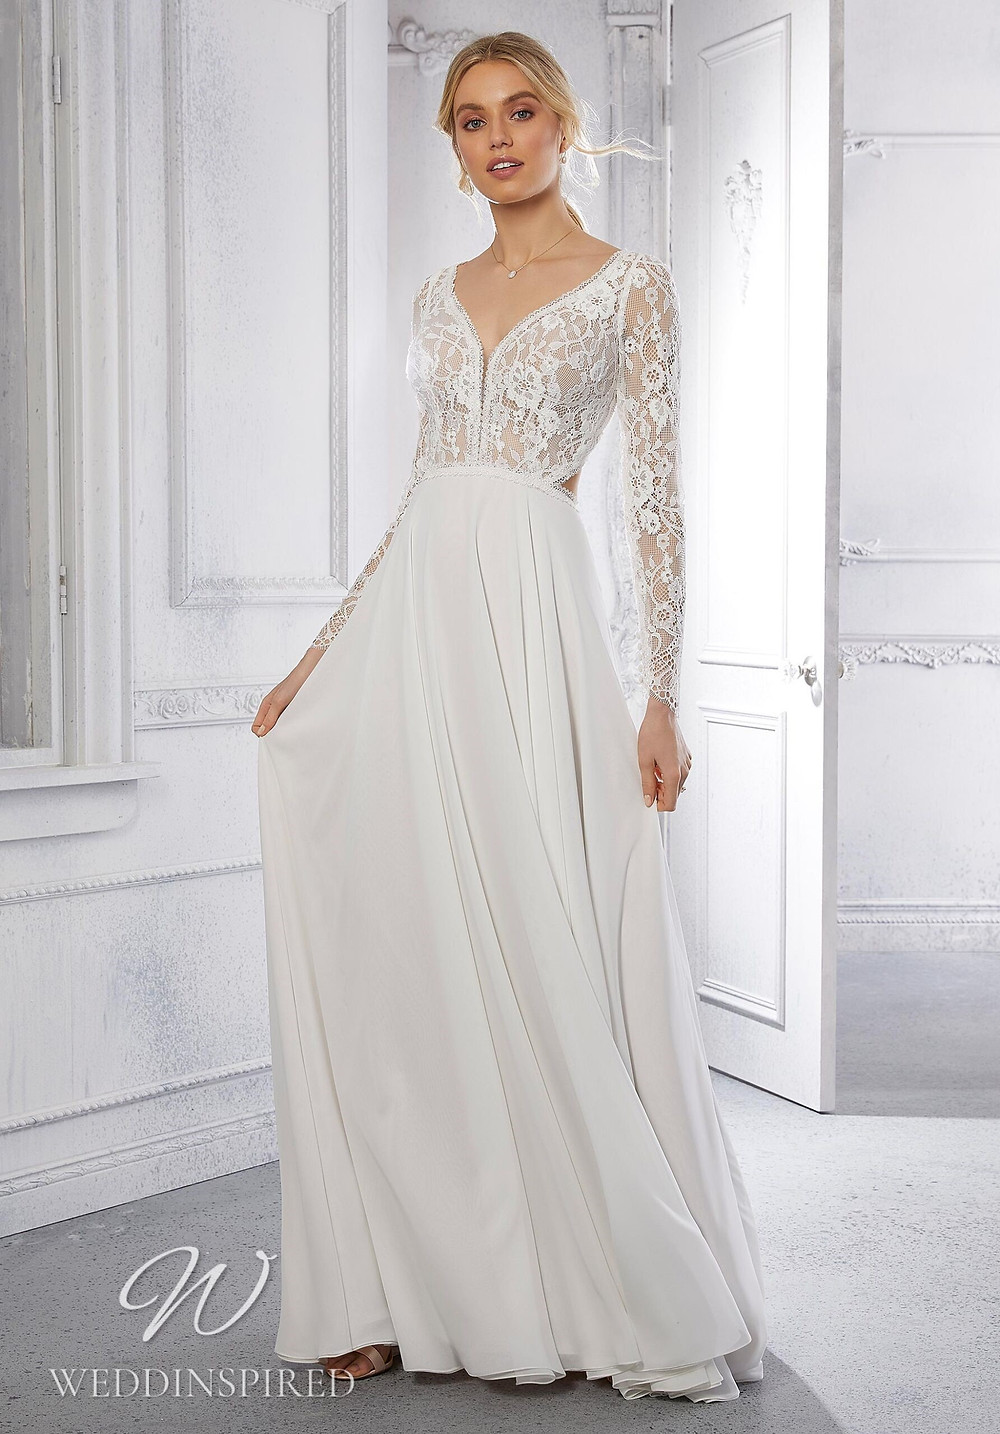 A Madeline Gardner lace and chiffon A-line wedding dress with long sleeves